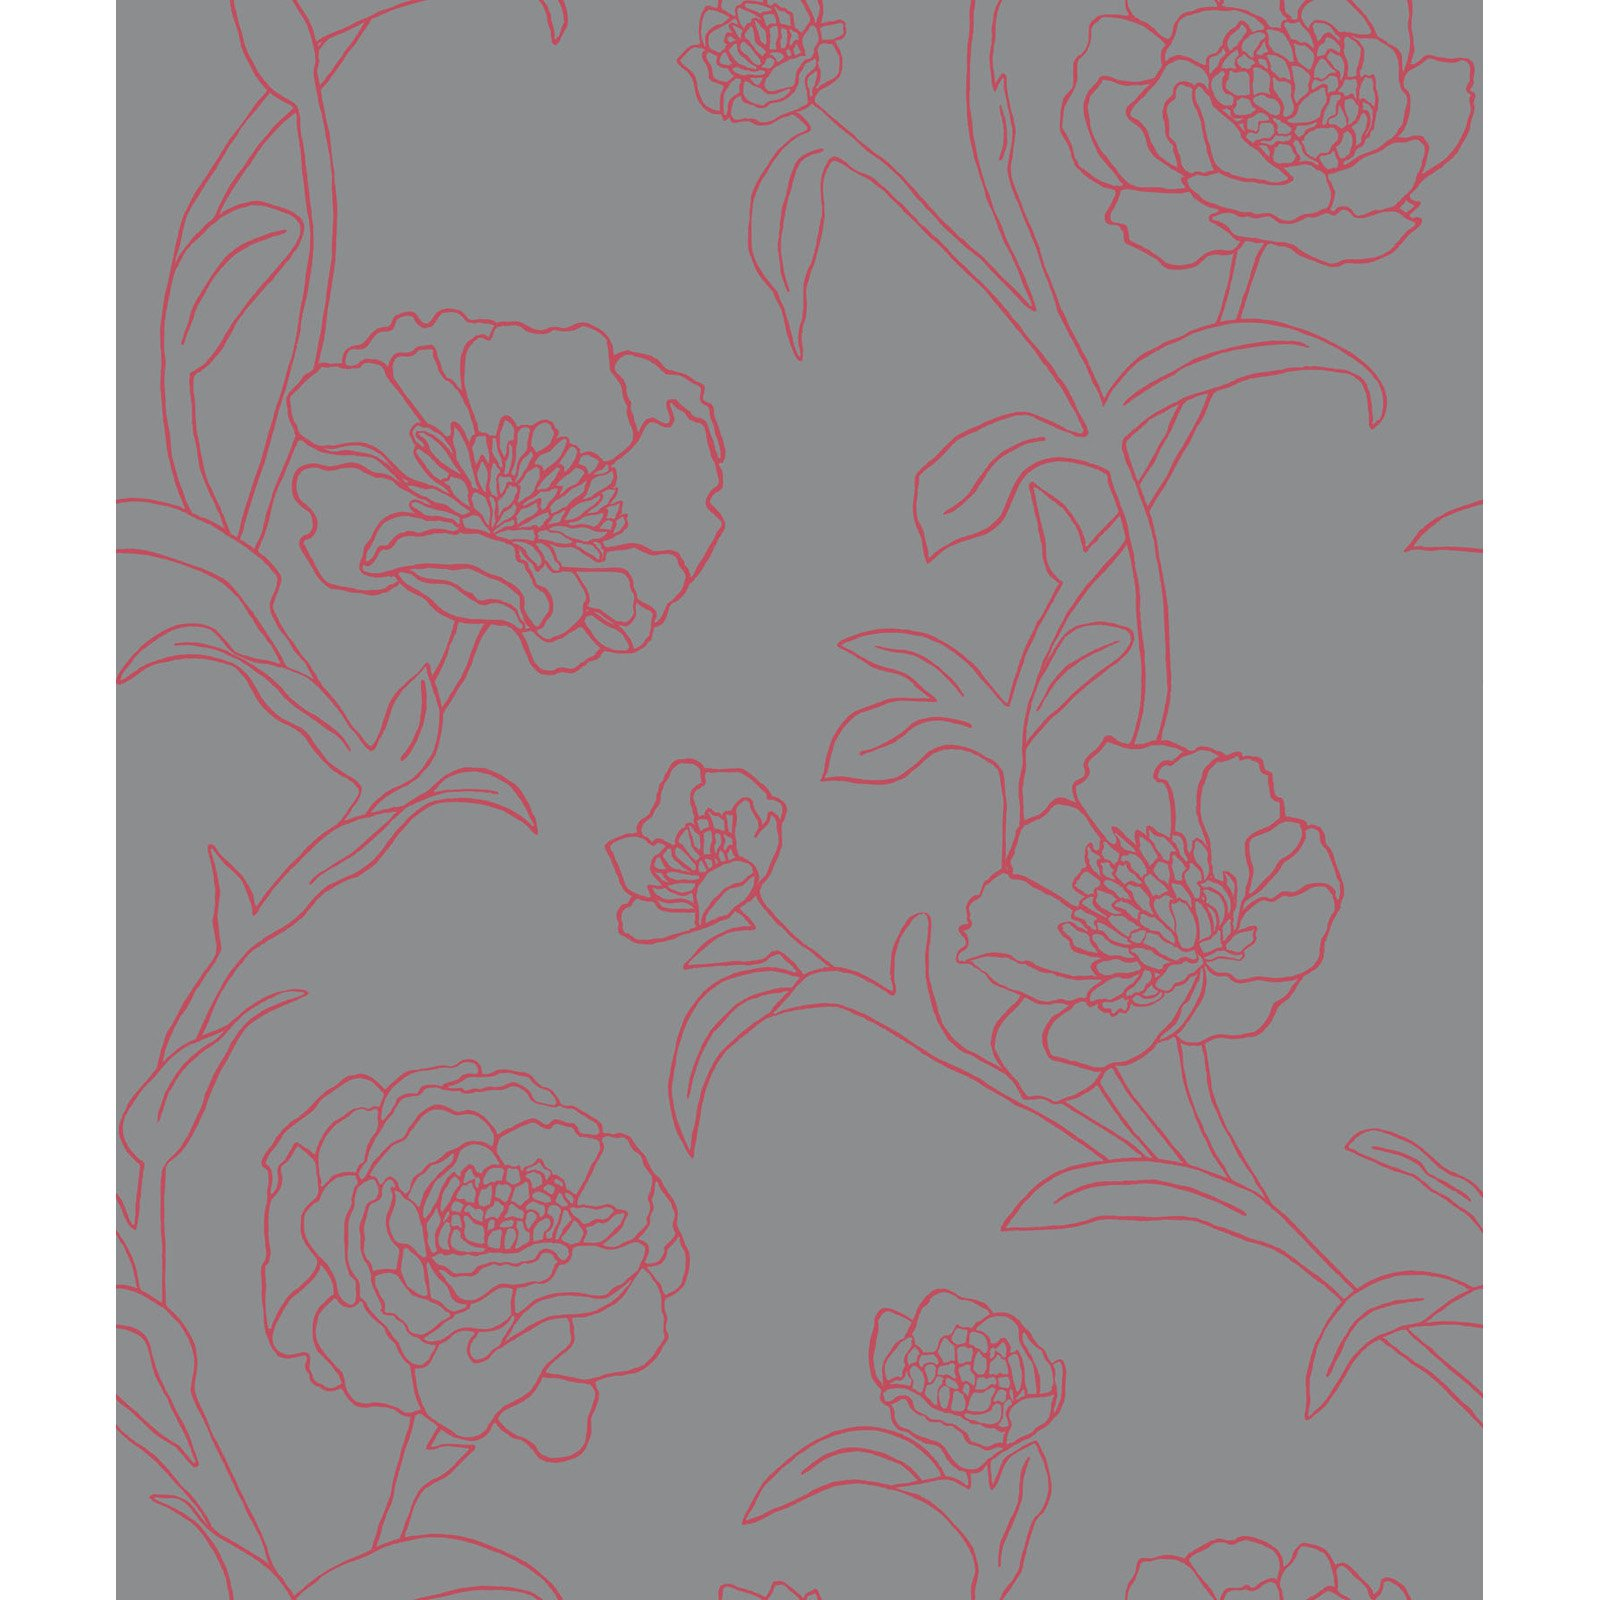 charming Peonies Self Adhesive Tempaper Wallpaper for cute wallpaper ideas